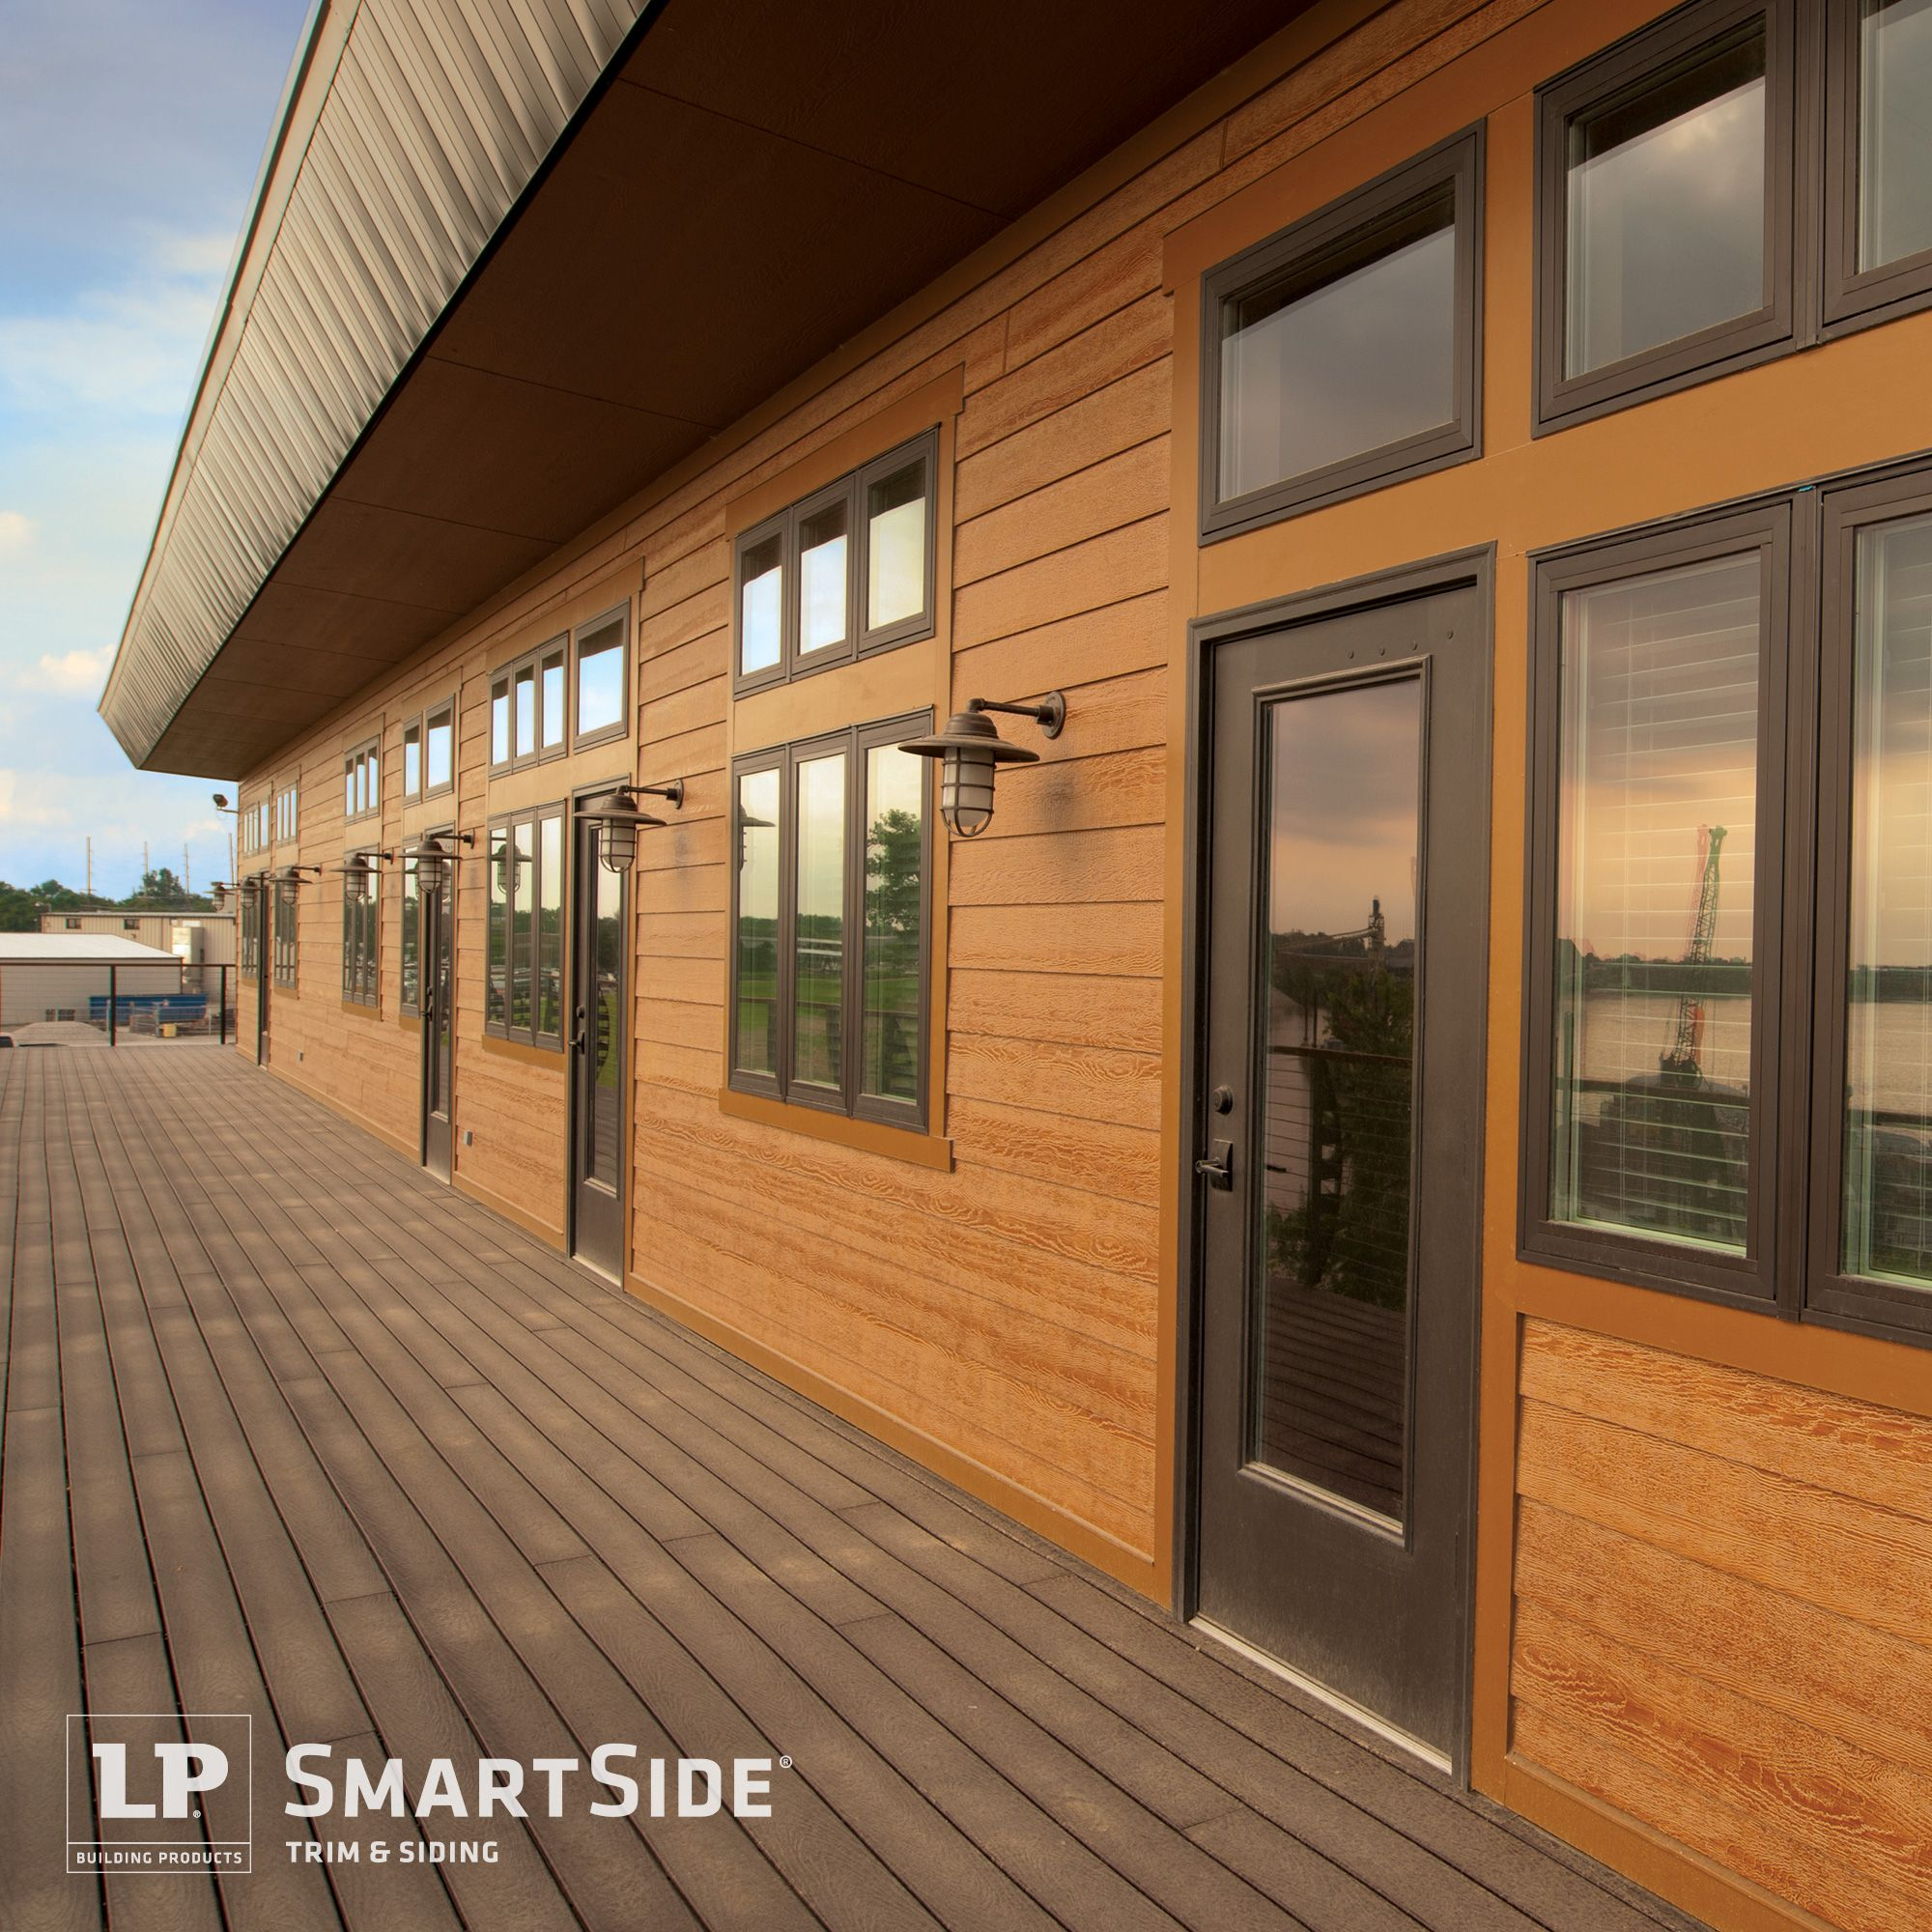 Lp smartside trim and siding products aren 39 t just for for Smartside engineered wood siding